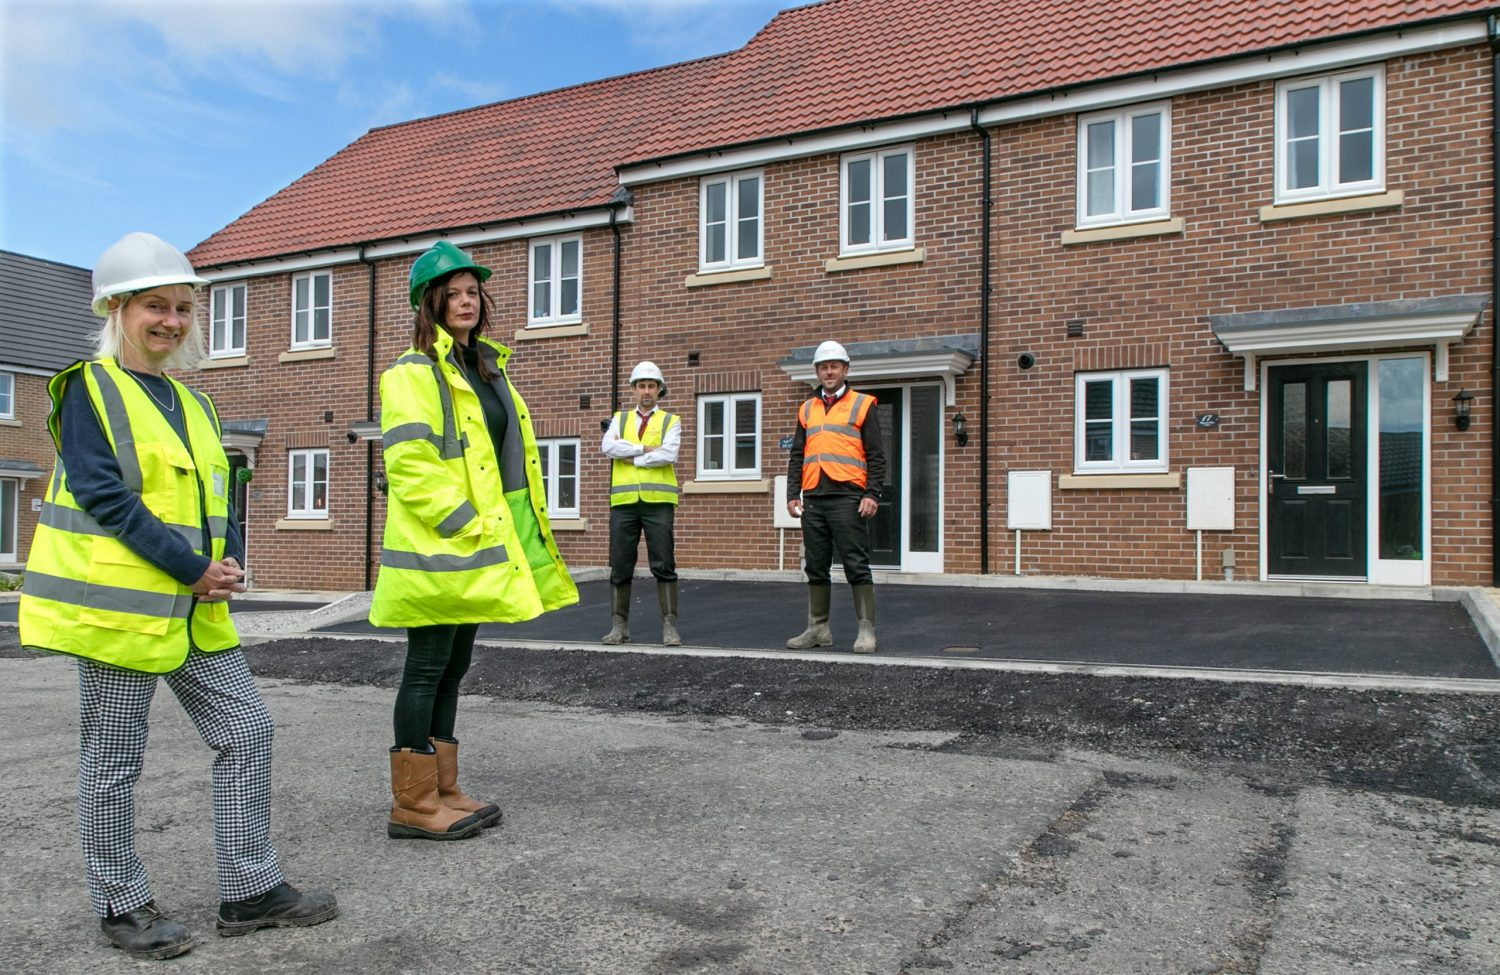 From left: Beyond Housing Development Manager Karen Howard, Assistant Project Manager Victoria Smith, Linden Homes Assistant Site Manager Terry Palmer, and Site Manager Gary Barker